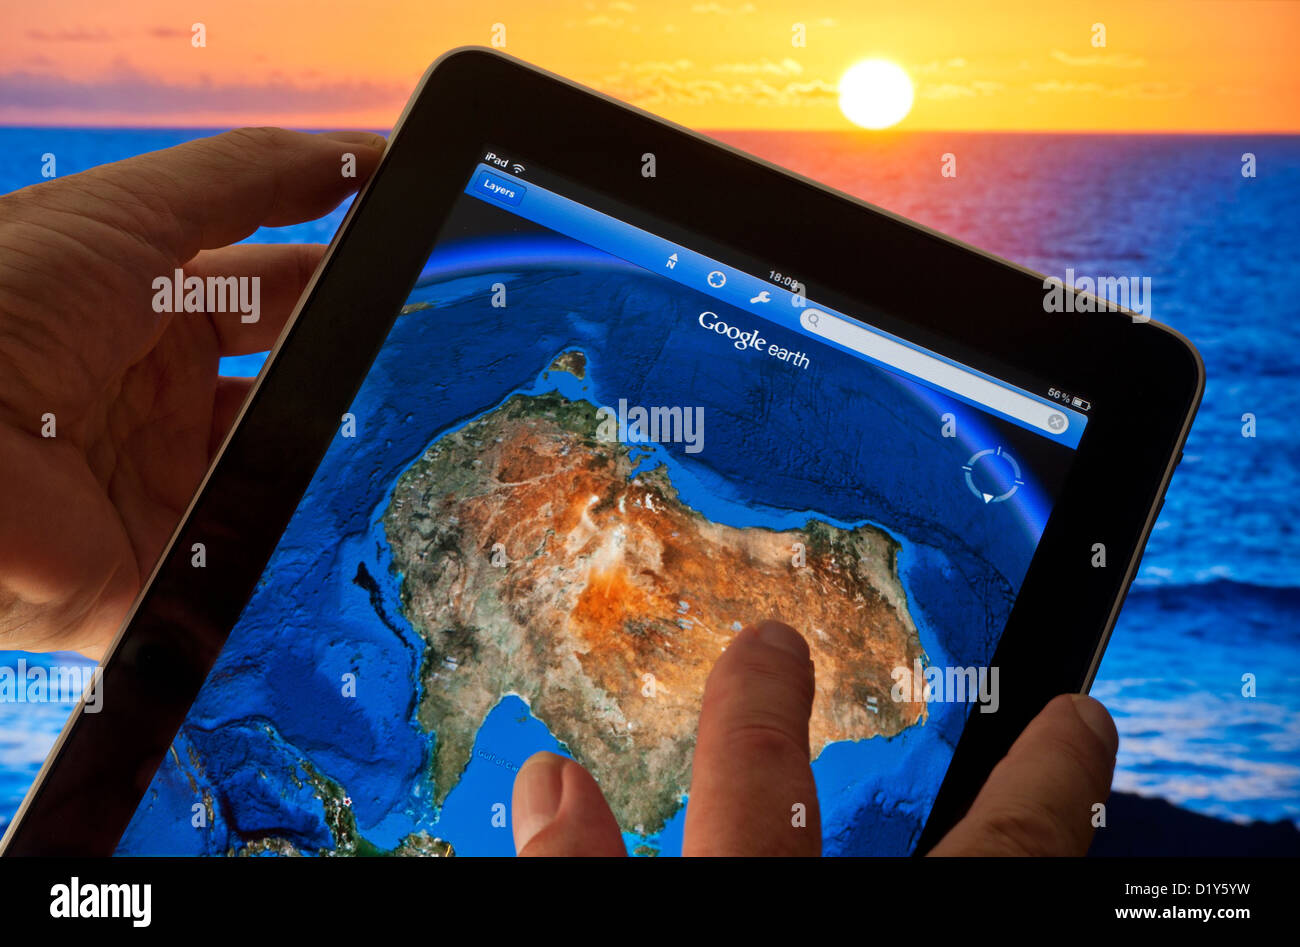 GOOGLE EARTH AUSTRALIA Hands holding Apple iPad with Google Earth application on screen featuring map of Australia - Stock Image